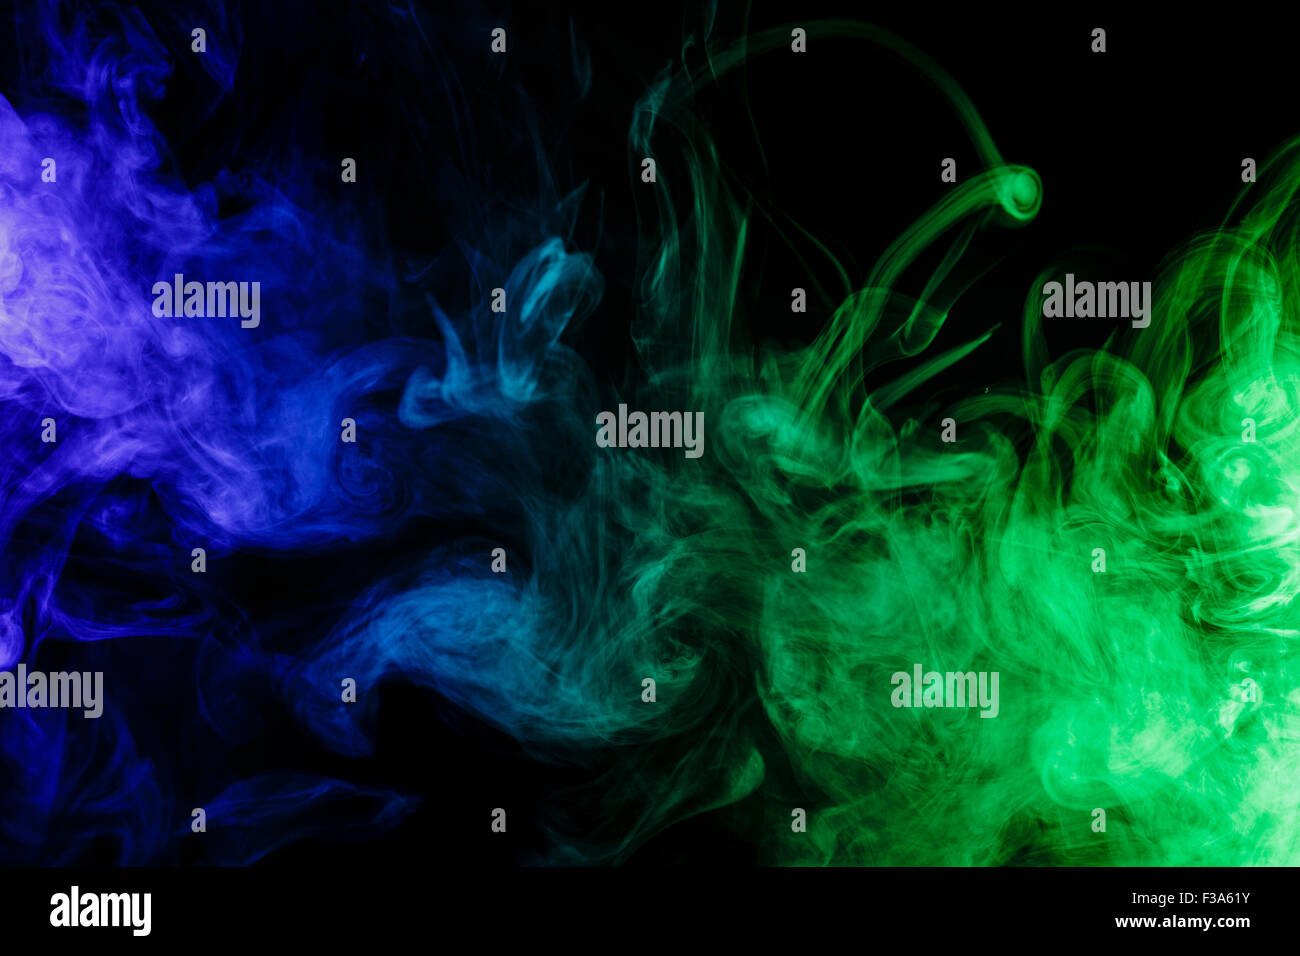 Abstract Art Blue Green Smoke Stock Photos & Abstract Art Blue Green ...